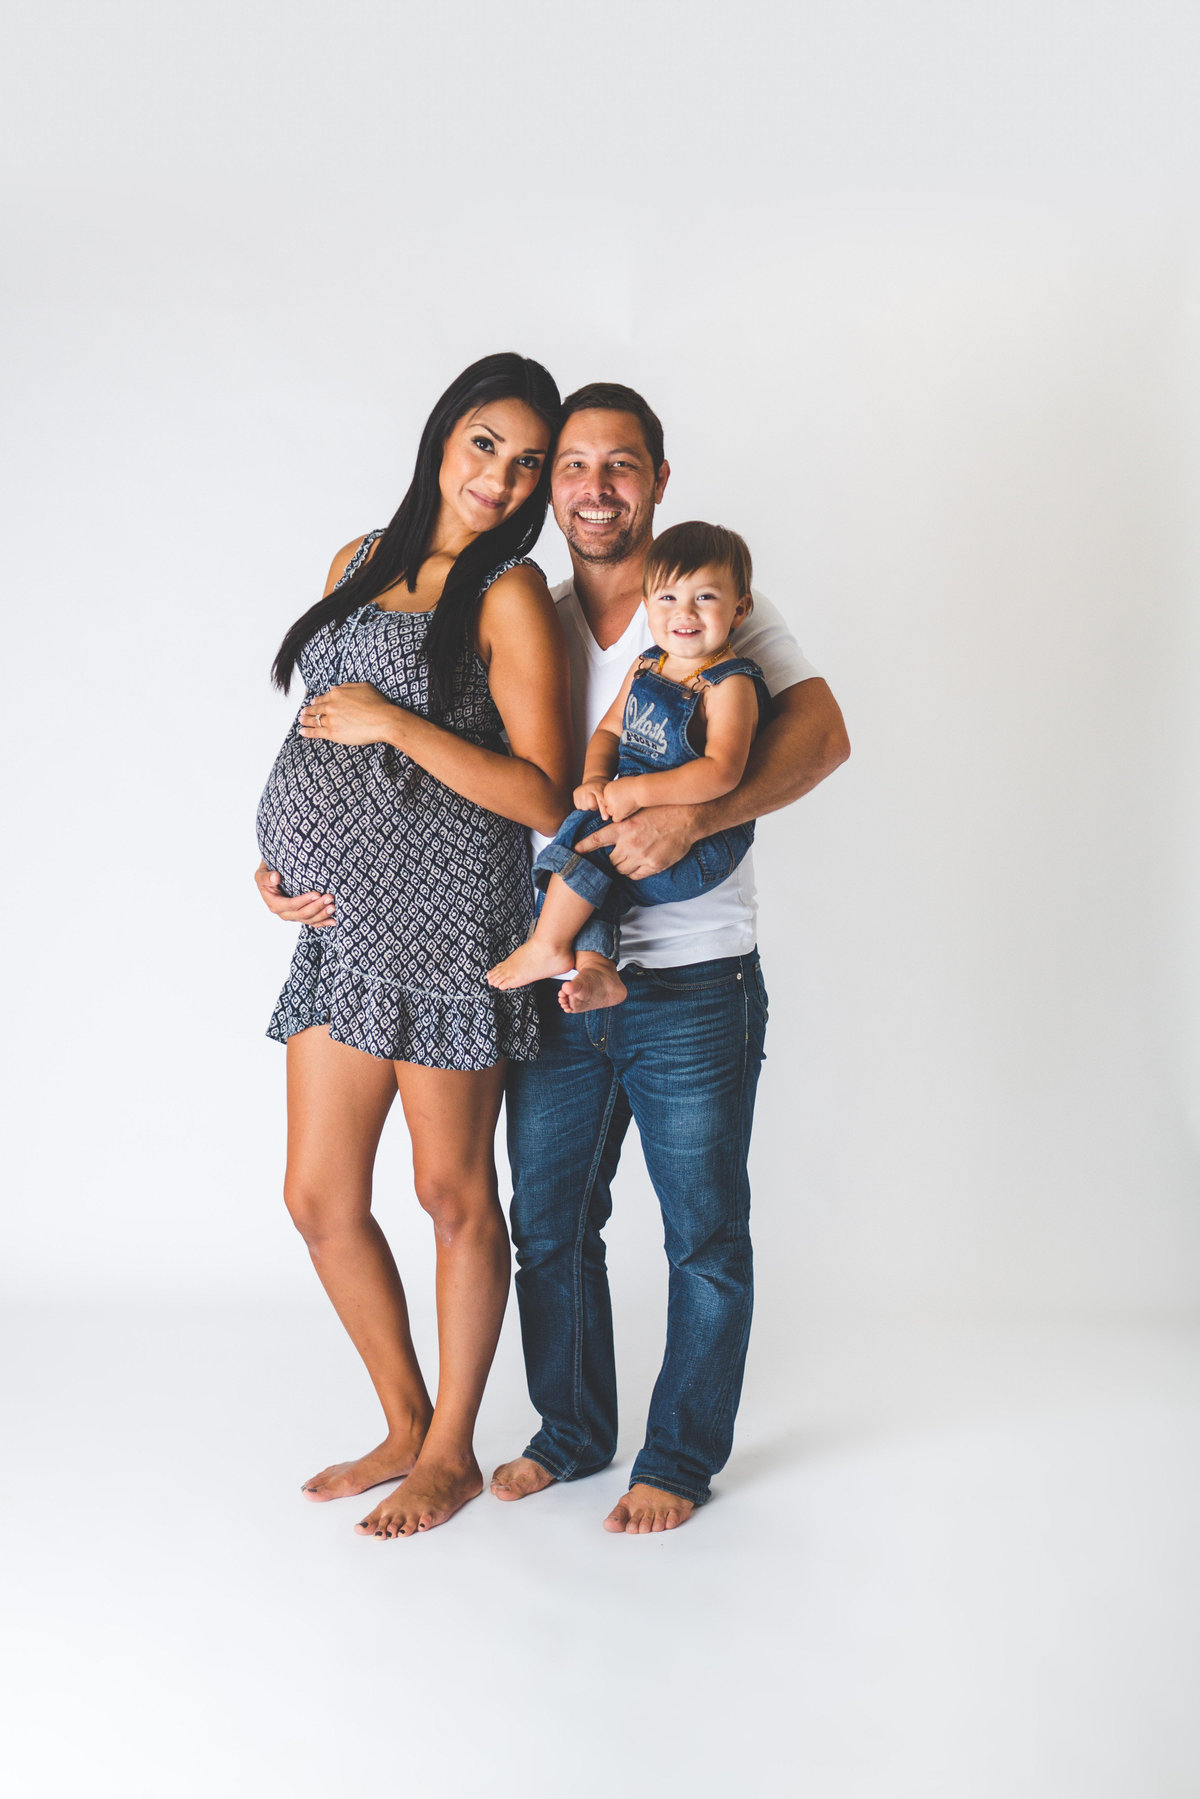 San Antonio In studio family maternity session on a white background with mother holding belly and father holding toddler.